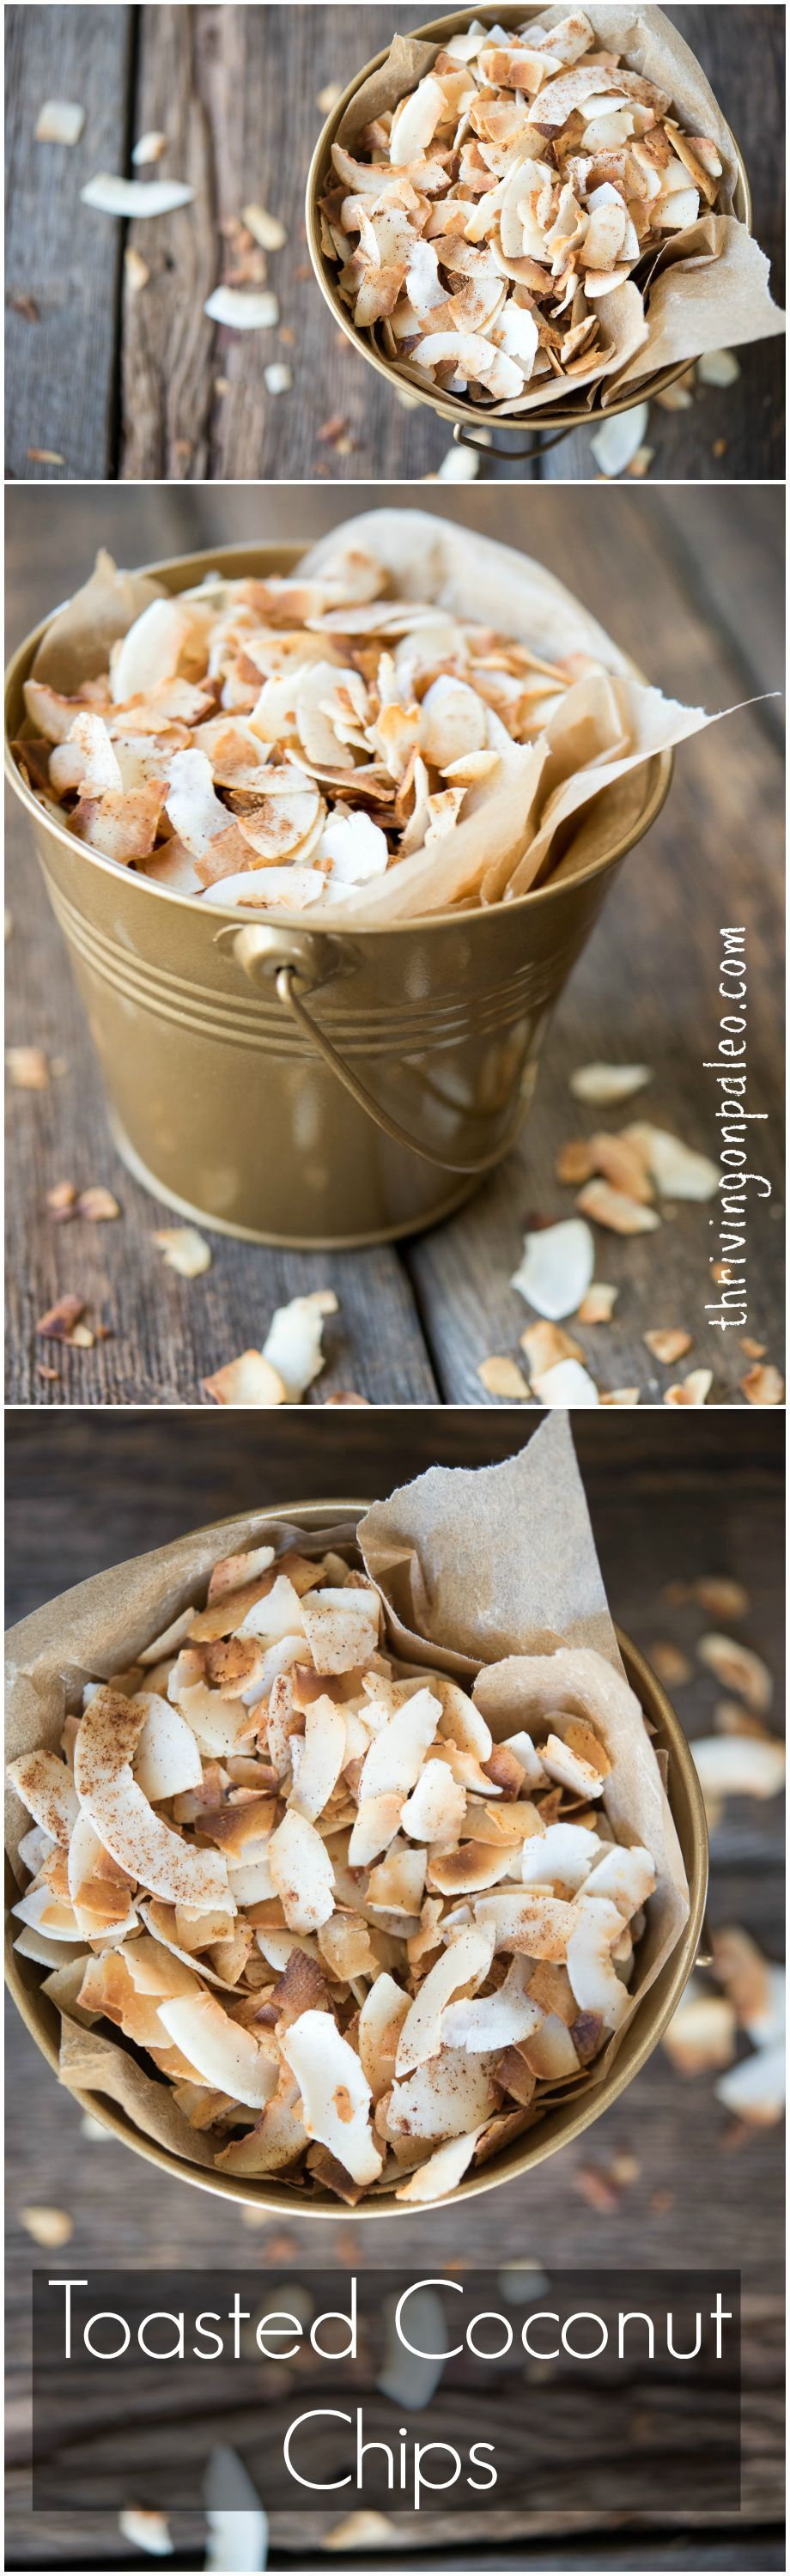 How to make toasted coconut chips - tutorial and recipe by Thriving on Paleo